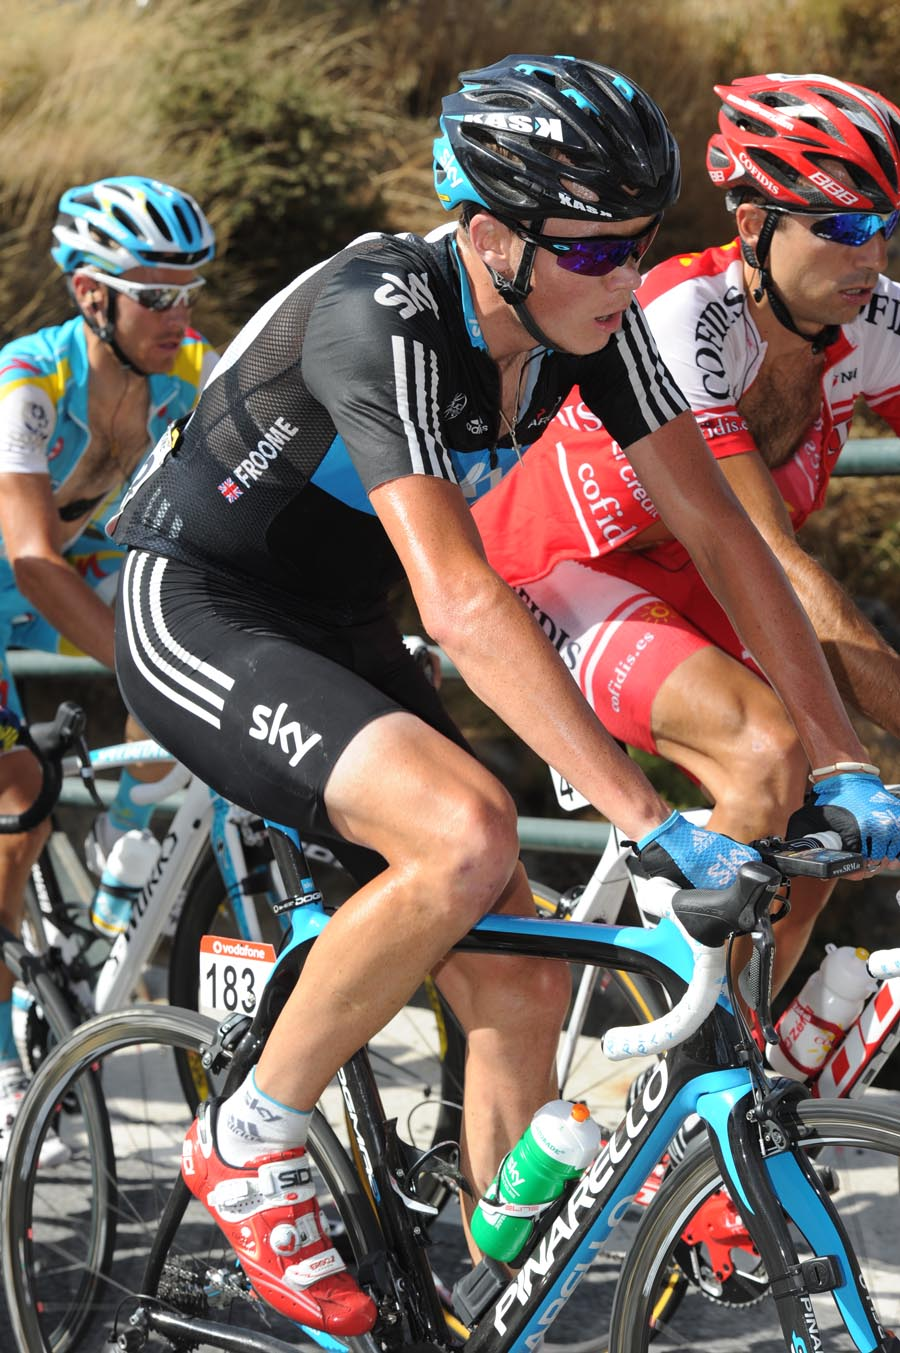 Chris Froome, Vuelta a Espana 2011, stage four